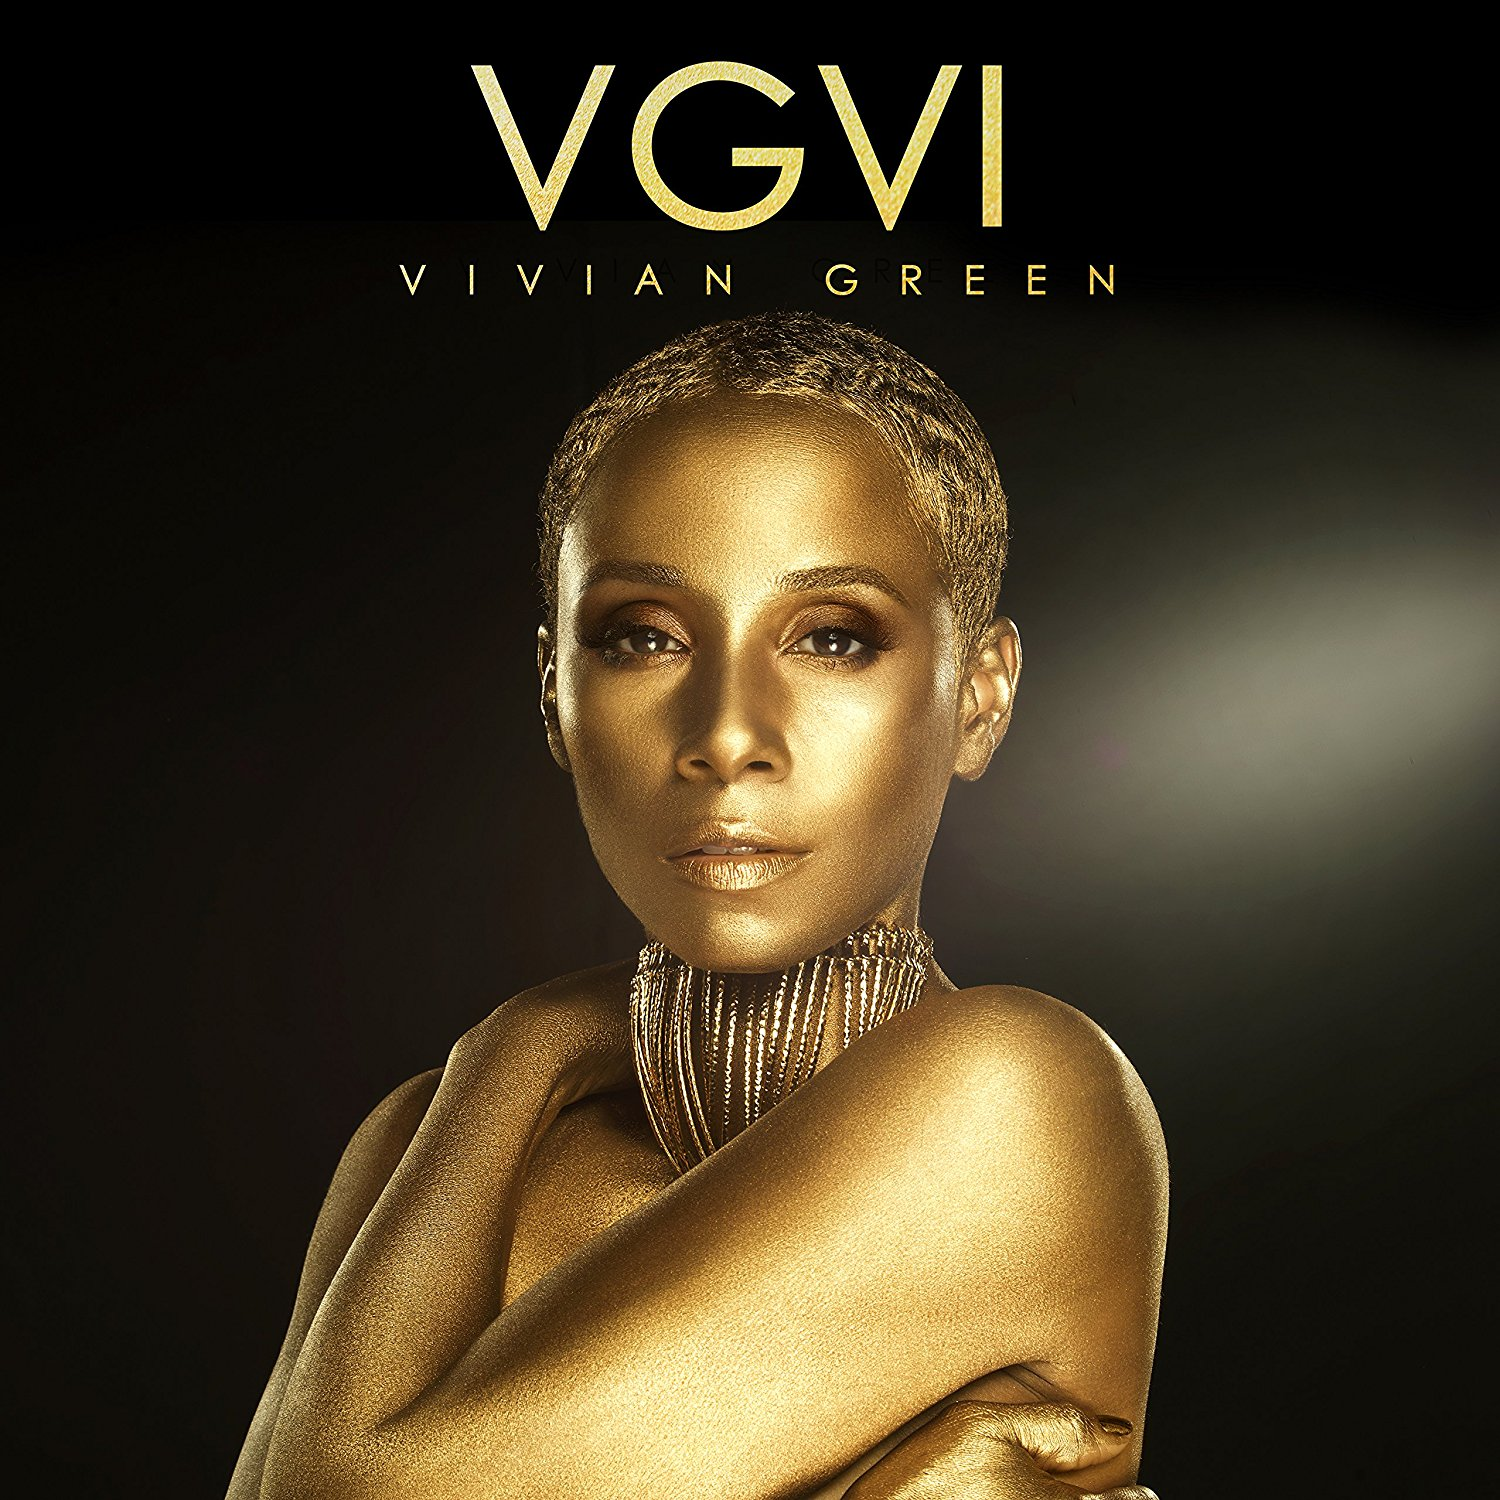 Vivian Green, VGVI | Album Review